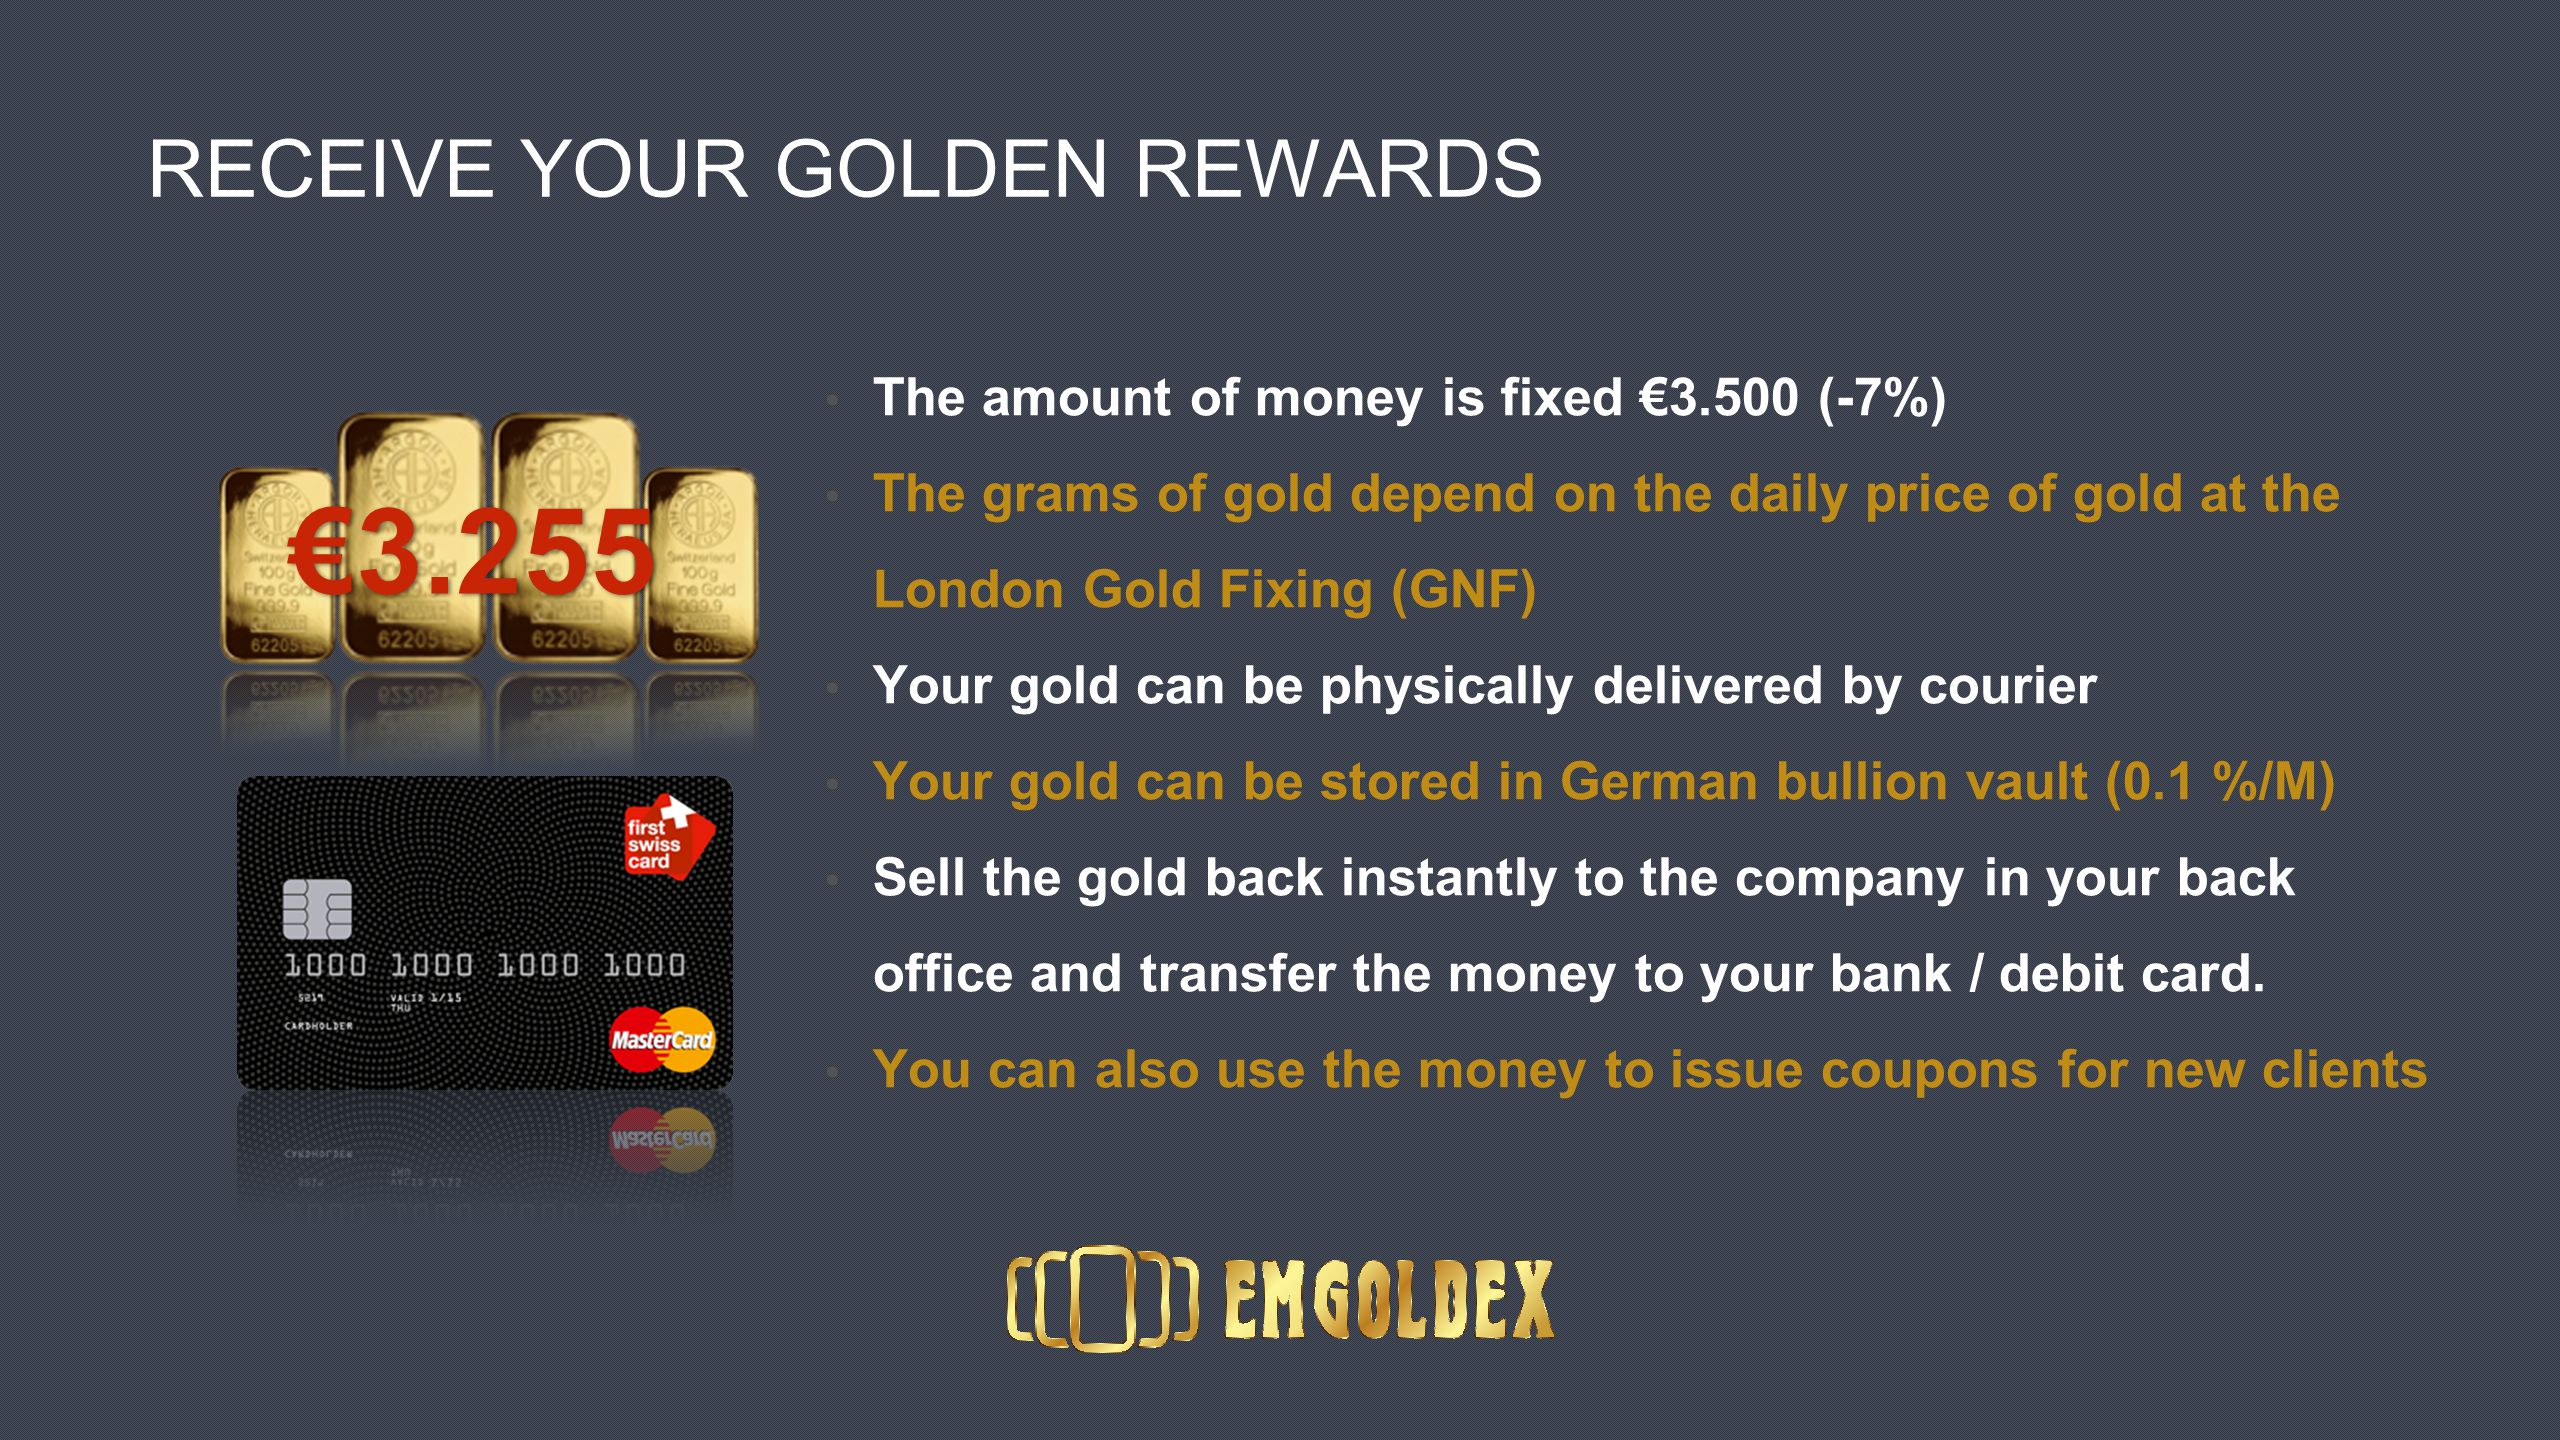 RECEIVE YOUR GOLDEN REWARDS The amount of money is fixed €3.500 (-7%) The grams of gold depend on the daily price of gold at the London Gold Fixing (GNF) Your gold can be physically delivered by courier Your gold can be stored in German bullion vault (0.1 %/M) Sell the gold back instantly to the company in your back office and transfer the money to your bank / debit card.